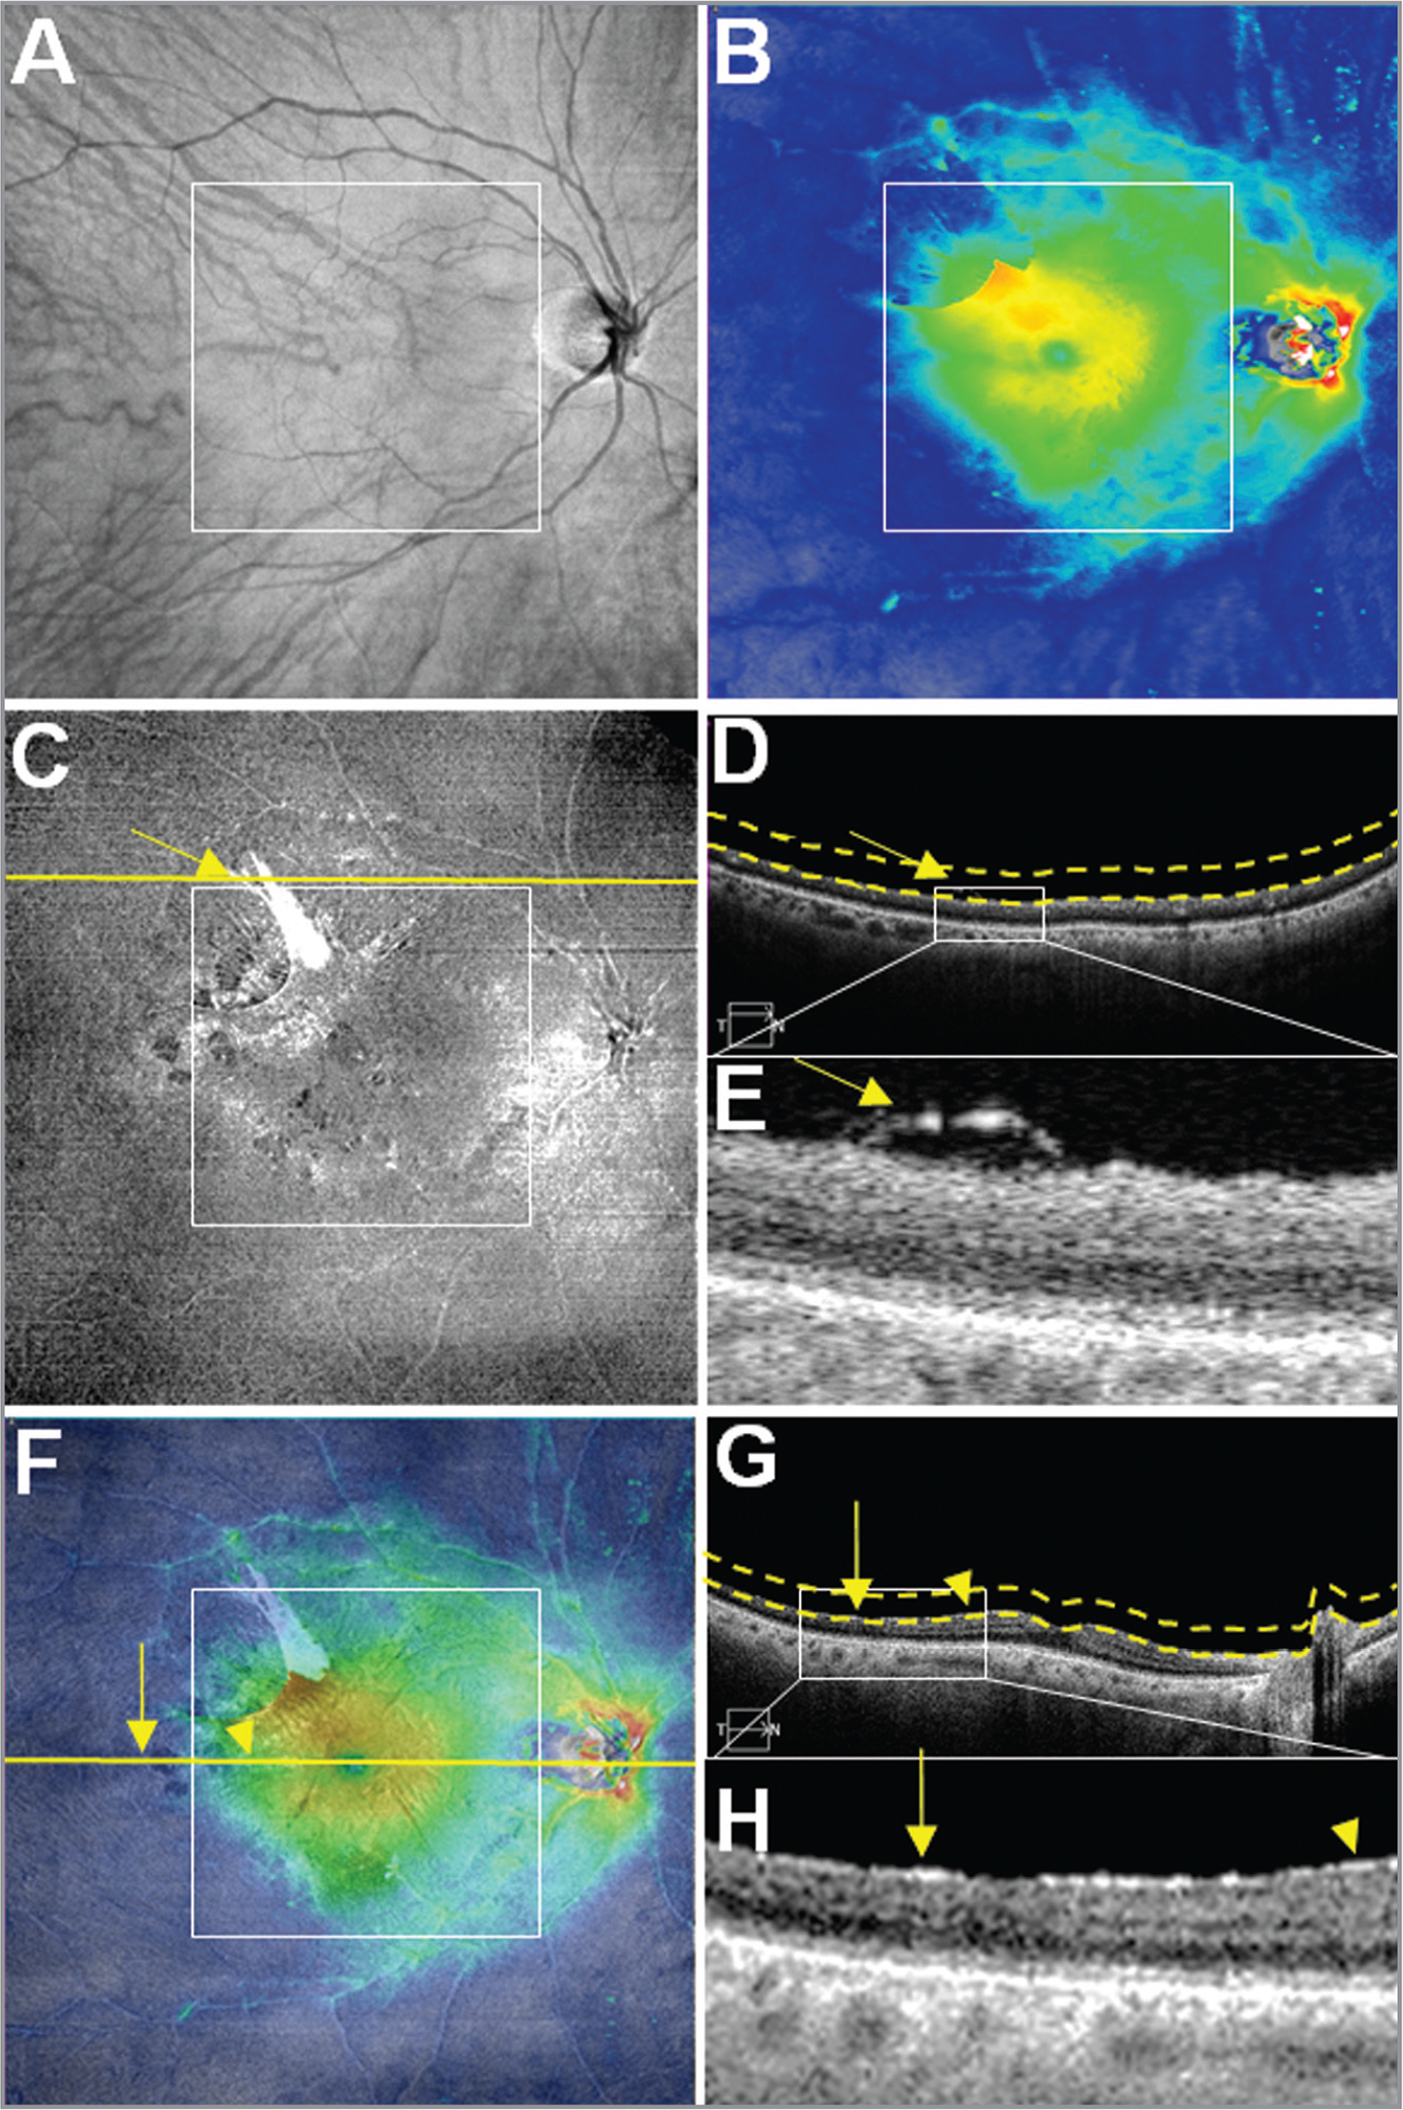 Case No. 1: Multi-segmented images from a single 12 mm × 12 mm swept-source optical coherence tomography (SS-OCT) scan of an epiretinal membrane (ERM) in the right eye of a 65-year-old woman. The white square boxes centered on the fovea in panels A, B, C, and F represent a 6 mm × 6 mm field of view (FOV). (A) OCT fundus image. Notice some vessels converging to the ERM superotemporally. (B) Retinal thickness map (RTM). Note the superotemporal thickening of the retina corresponding to the ERM traction. (C) Vitreoretinal interface (VRI) en face image. The image shows a hyperreflective ERM extending from the parafoveolar to the superotemporal region. Yellow arrows in images C, D, and E are pointing to the edge of the ERM and emphasize potential traction and adherence of the ERM outside the 6 mm × 6 mm FOV. (D) B-scan corresponding to the yellow line of C outside the 6 mm × 6 mm white square. Dashed lines define the upper and lower boundaries of the VRI en face slab. (E) Magnification of the white rectangle of the image D. This demonstrates the extent of the ERM outside the 6 mm × 6 mm FOV. (F) Overlay of Panel B (60% transparency) on top of Panel C. Yellow horizontal line represents the foveal B-scan. Yellow vertical arrow highlights the extent of the ERM outside 6 mm × 6 mm FOV, whereas the yellow arrowhead indicate the presence of the ERM within the 6 mm × 6 mm FOV. (G) Foveal B-scan. Dashed lines define the upper and lower boundaries of the VRI en face slab. (H) Magnified B-scan of the white square shown in Panel G. The ERM extends from inside the 6 mm × 6 mm FOV (yellow arrowhead) to the outside 6 mm × 6 mm FOV (yellow vertical arrow).